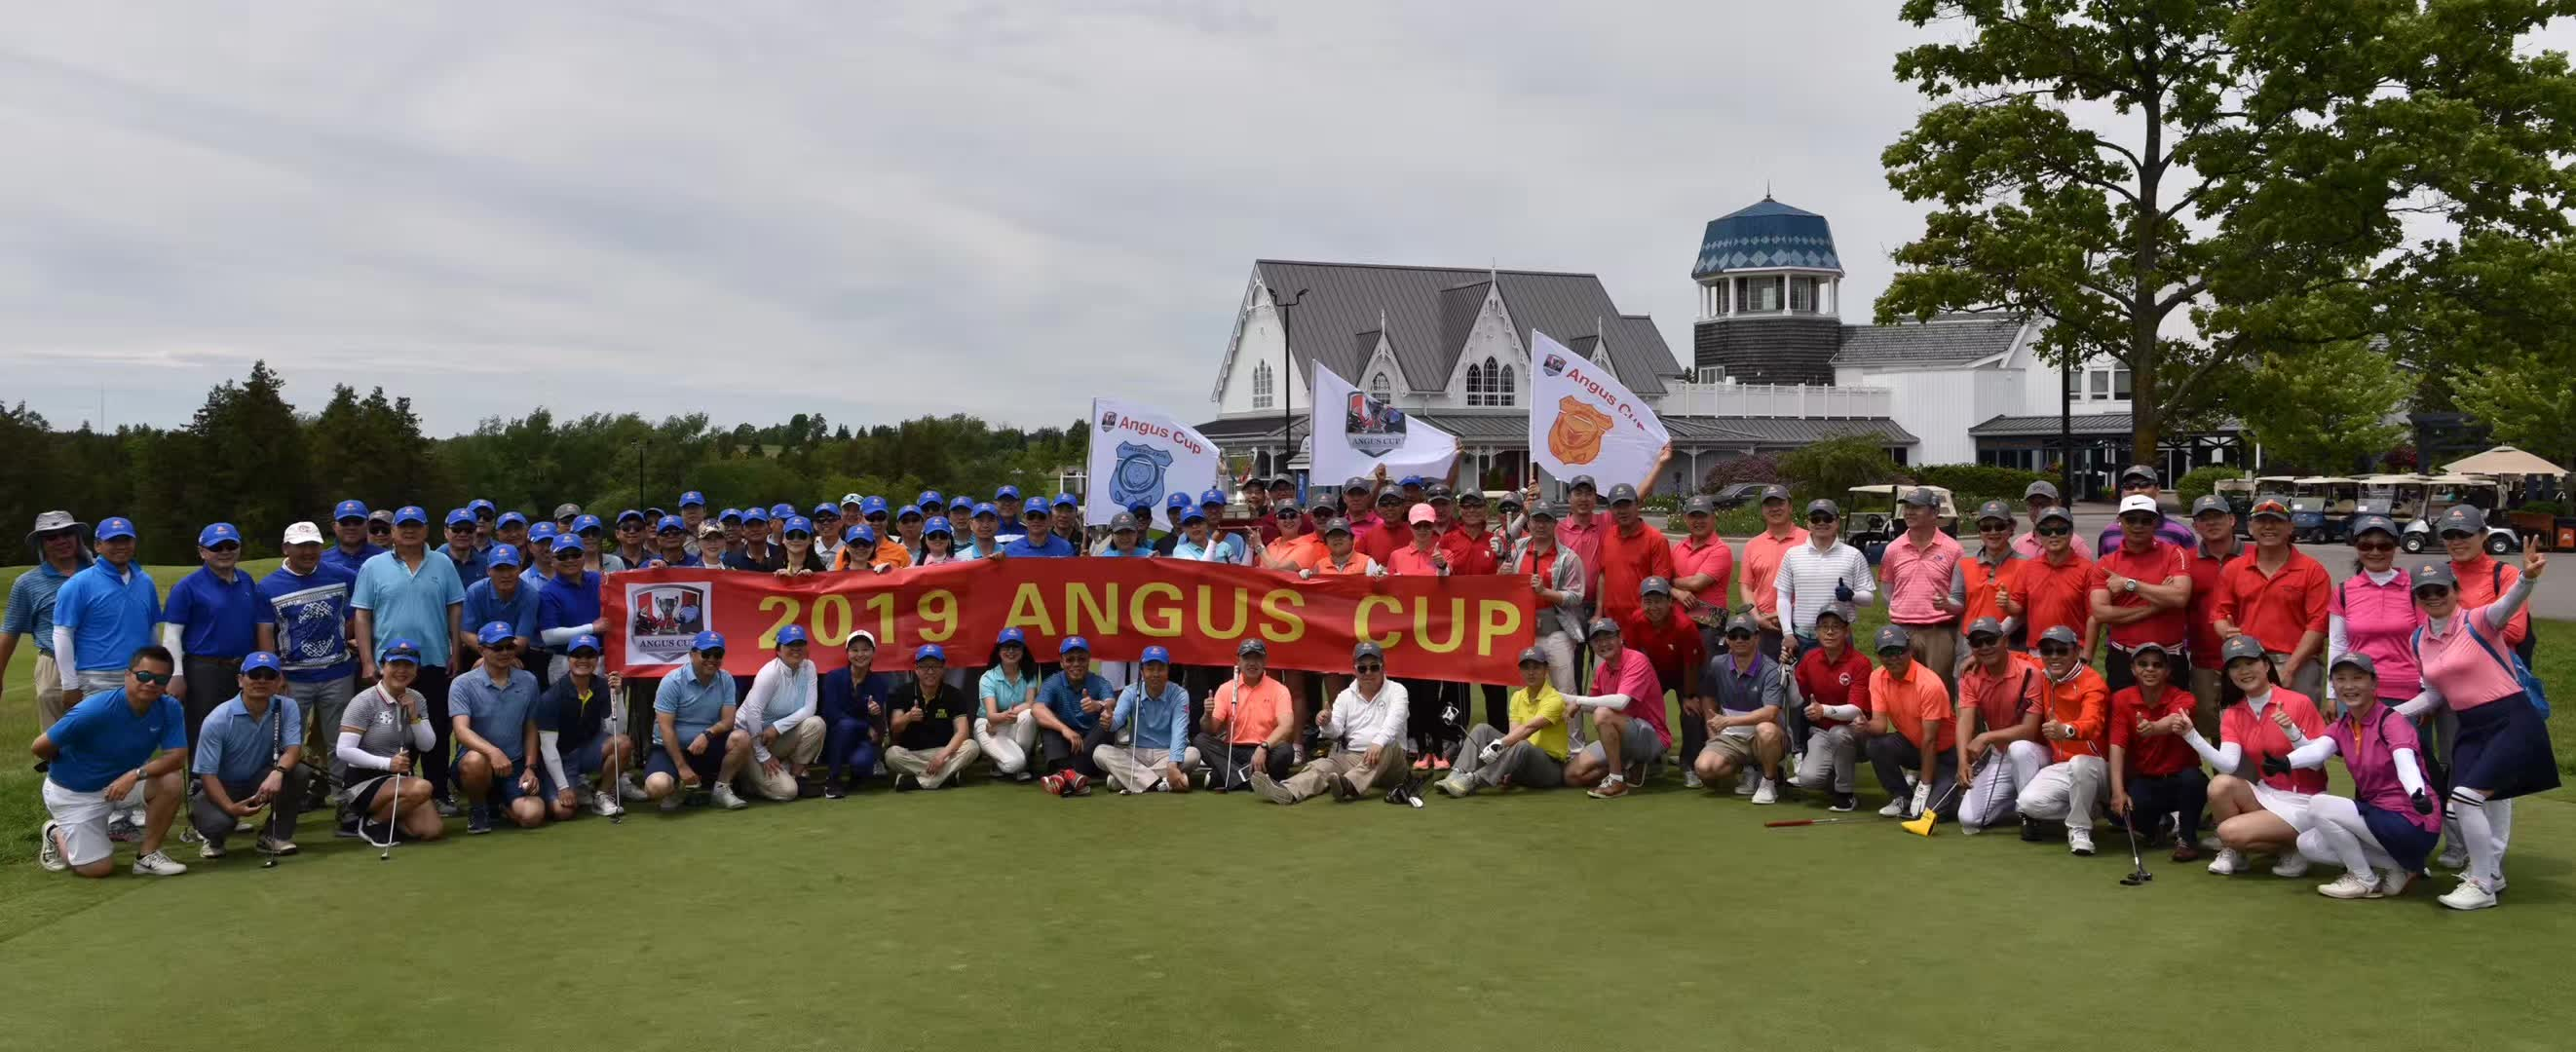 [STANLEY 金融] Gold Sponsor 赞助 2019 ANGUS CUP